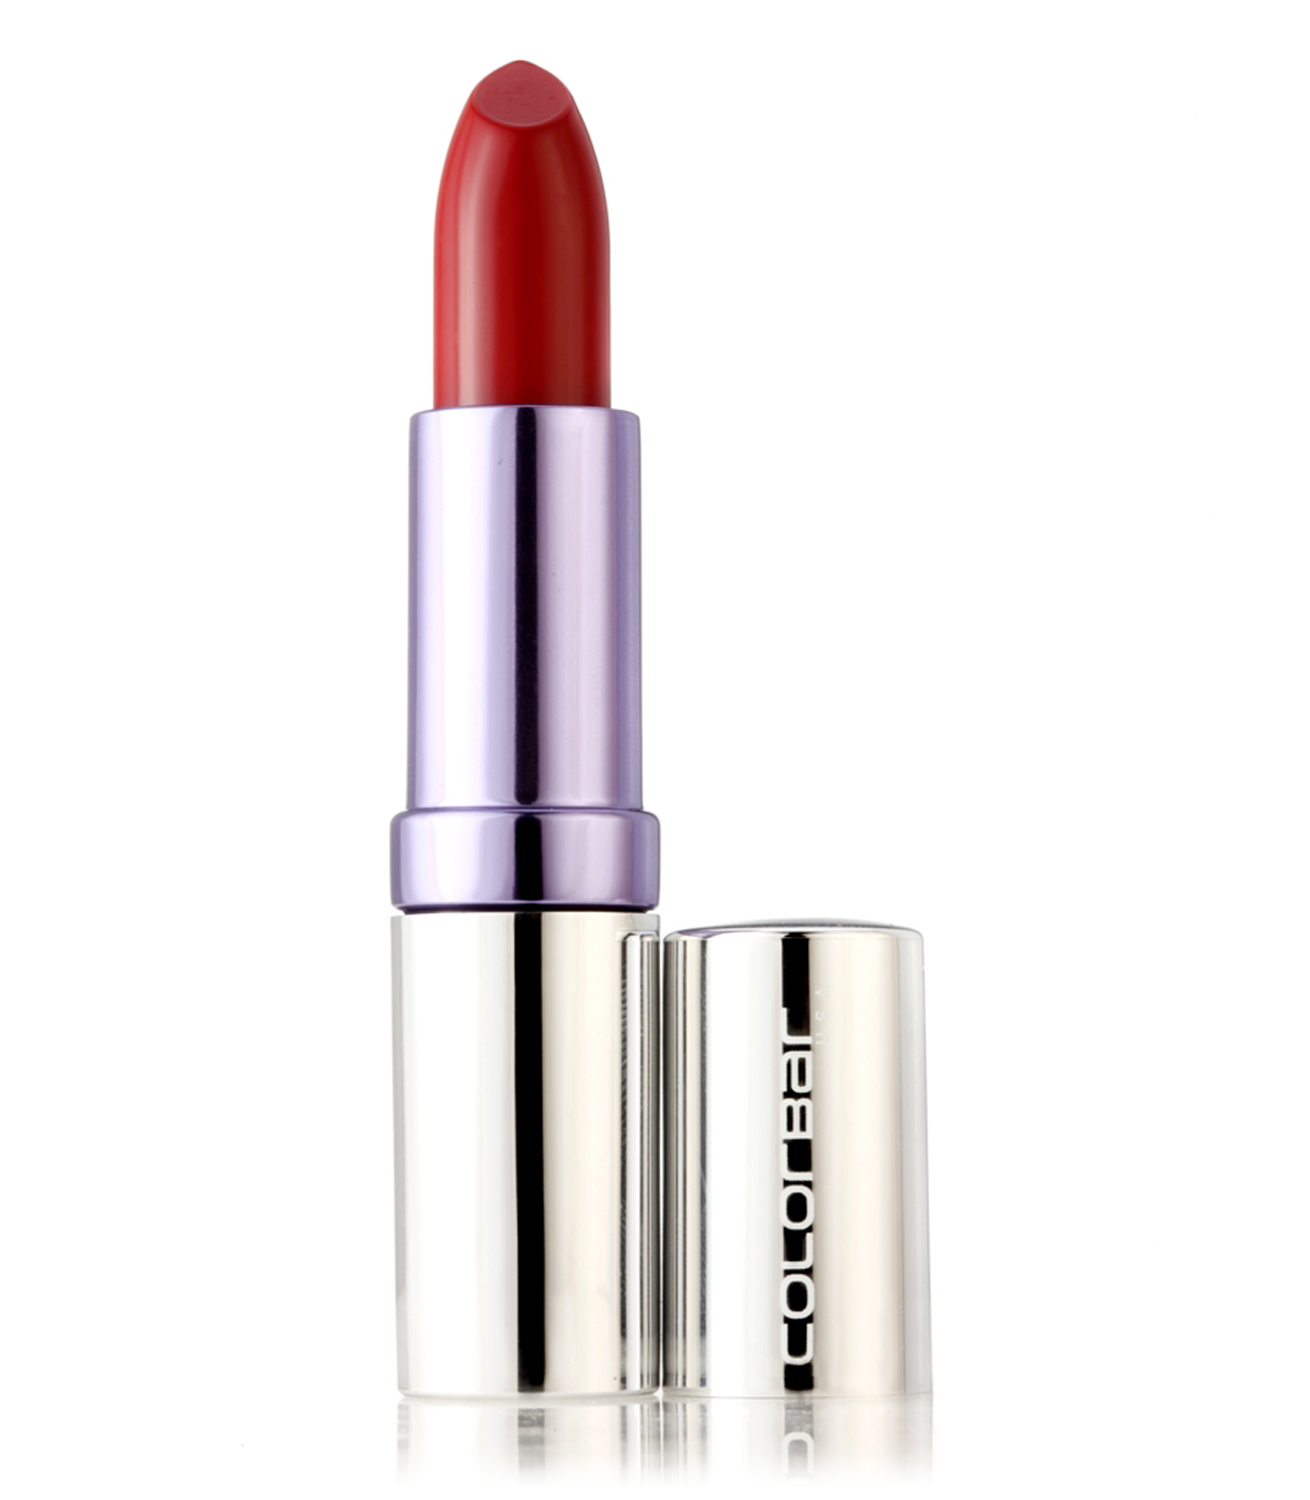 Wow! COLOR BAR Crème Touch #Lipstick Infatuation at Rs. 475 available in rich colours and rich moisturizing properties that making lips look fuller and creamier all day long : Buy Now form its official website to click here - http://goo.gl/M8lbr8